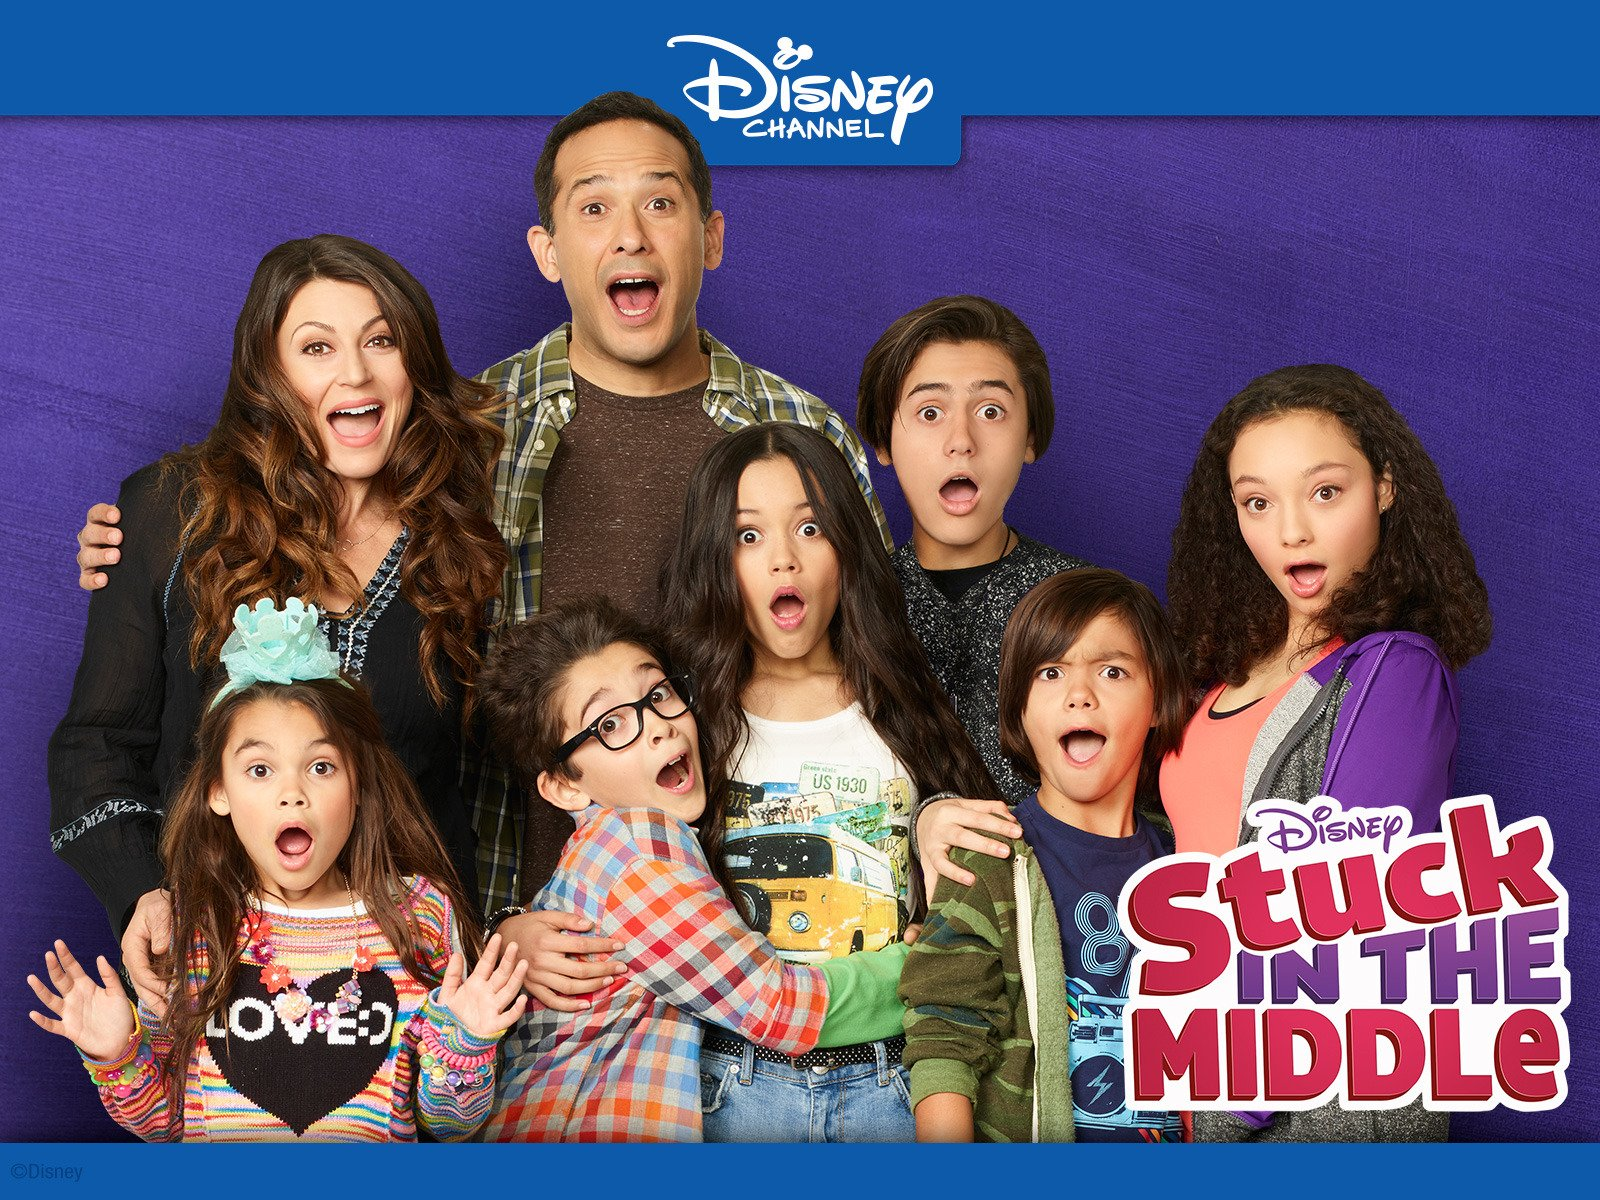 Disney Channel's Stuck in the Middle